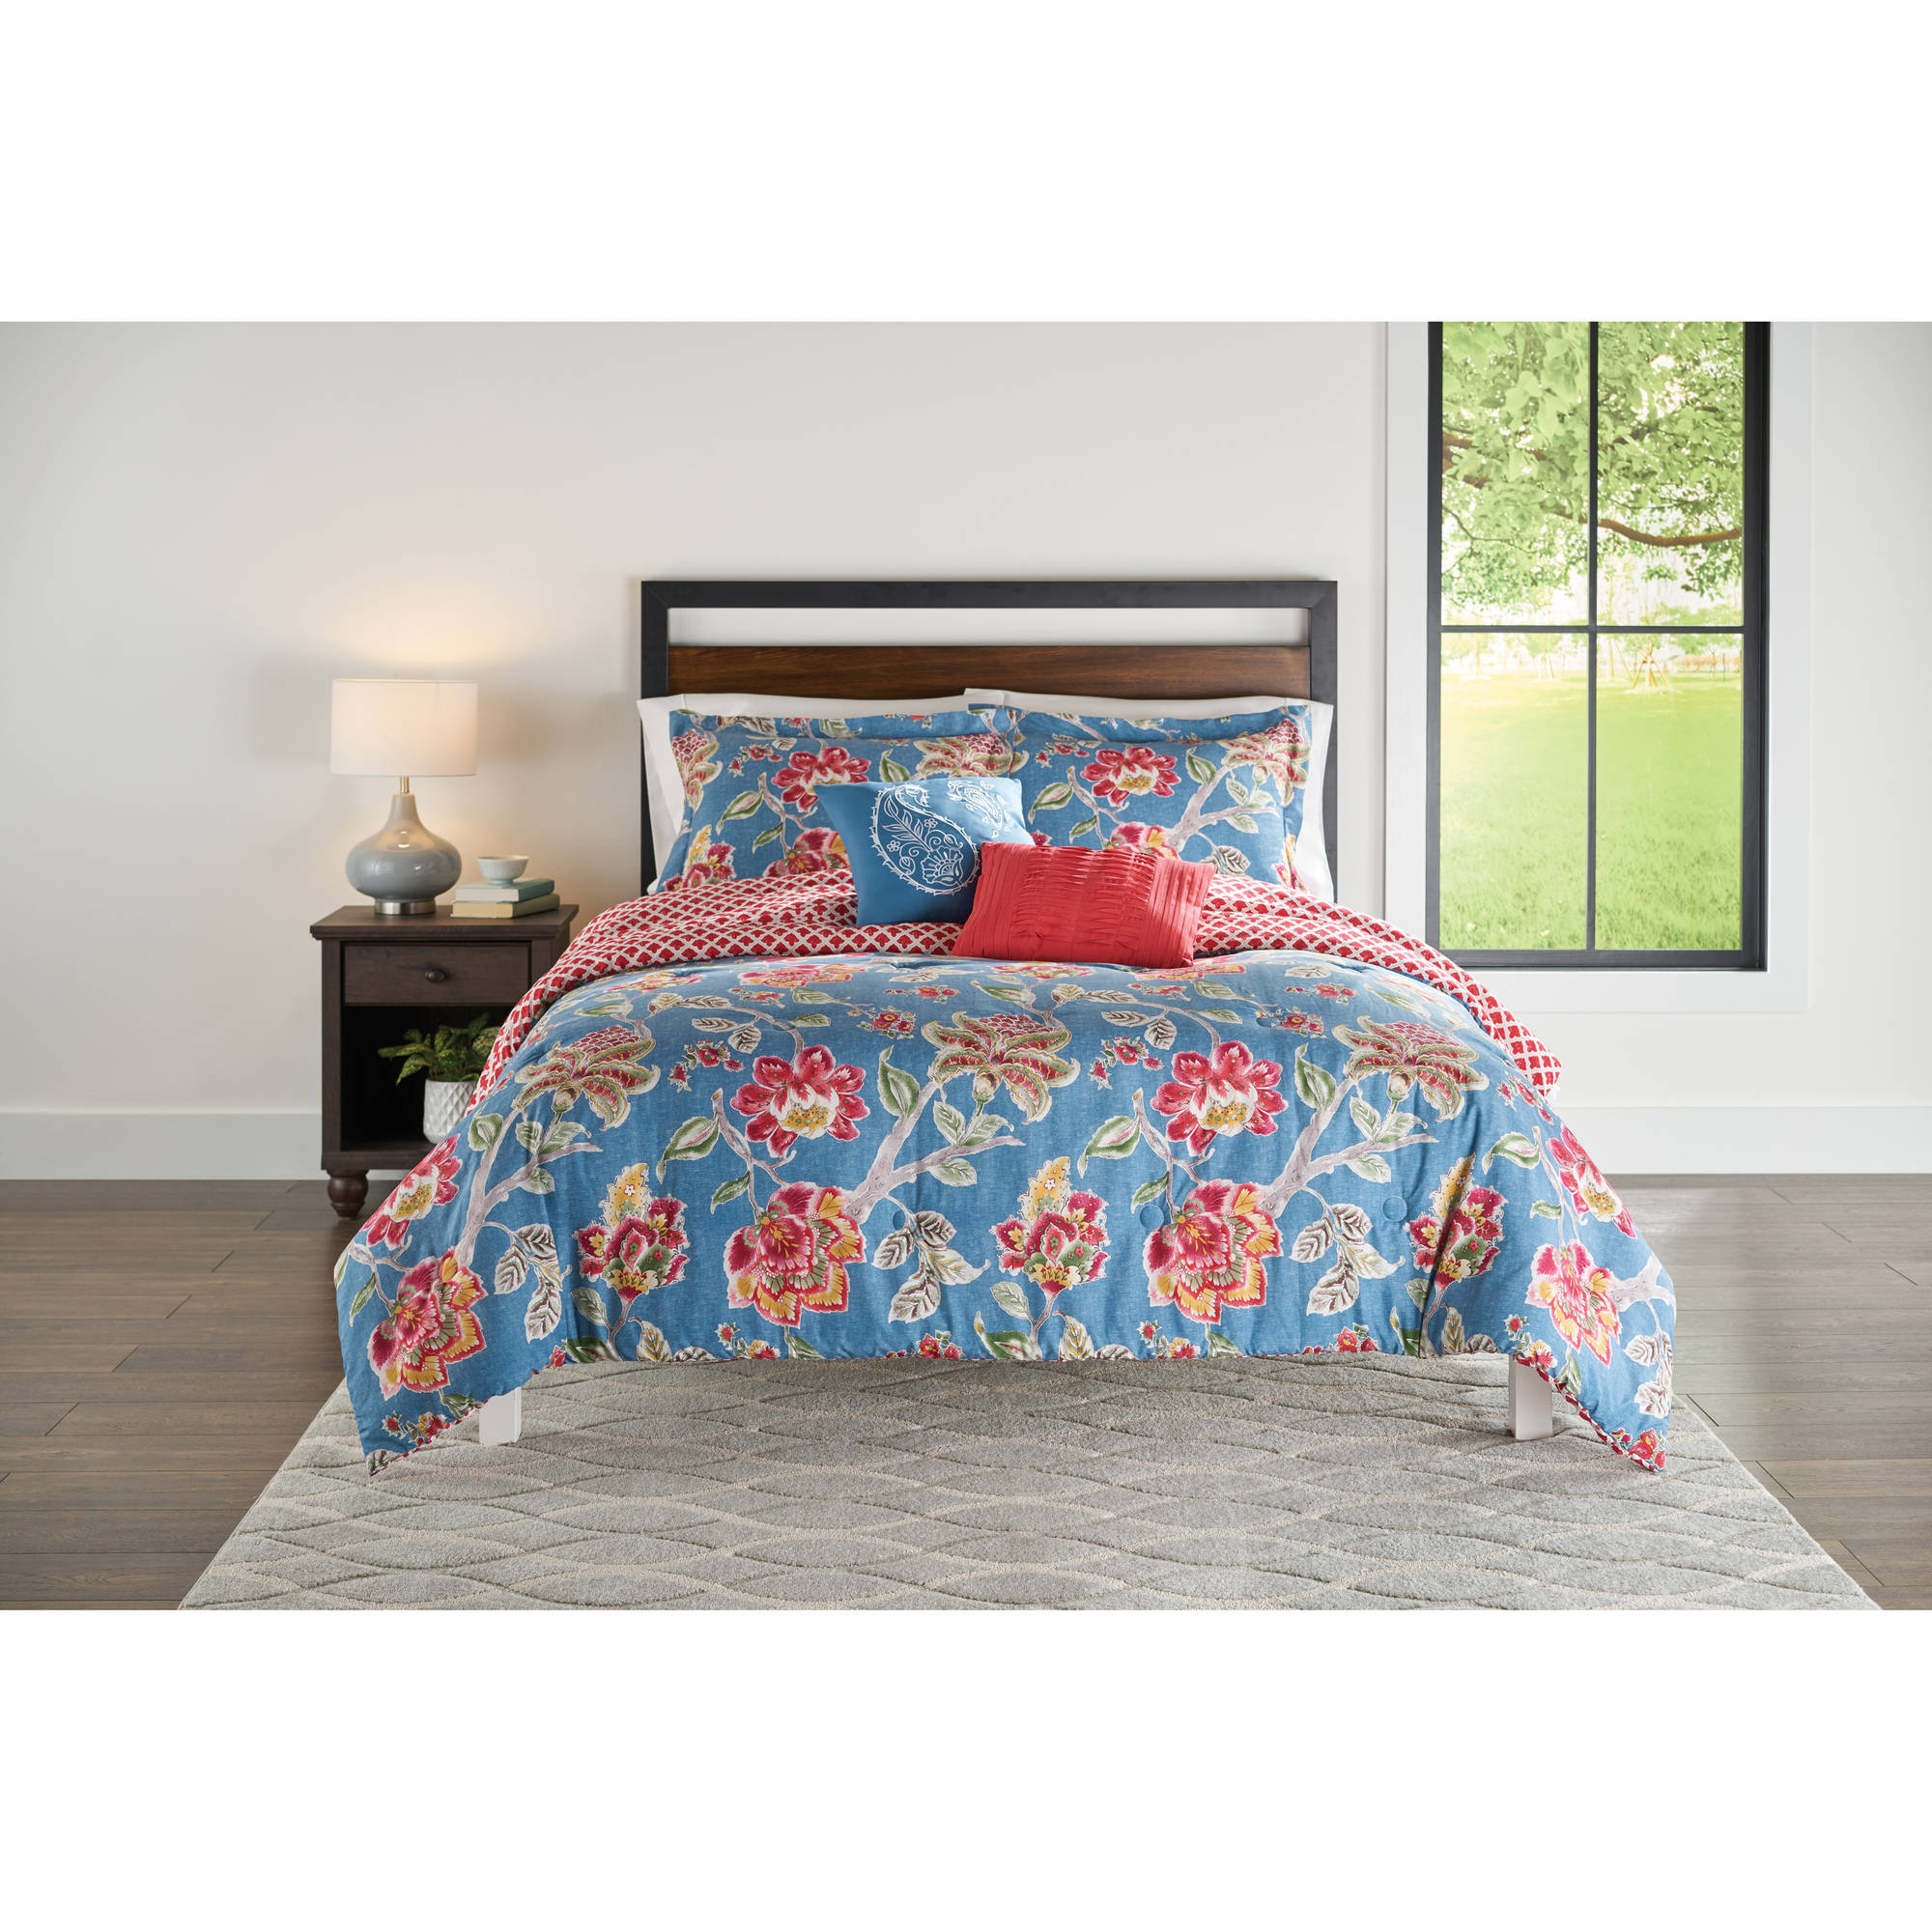 Better Homes and Gardens Floral Jacobean 5-Piece Comforter Set